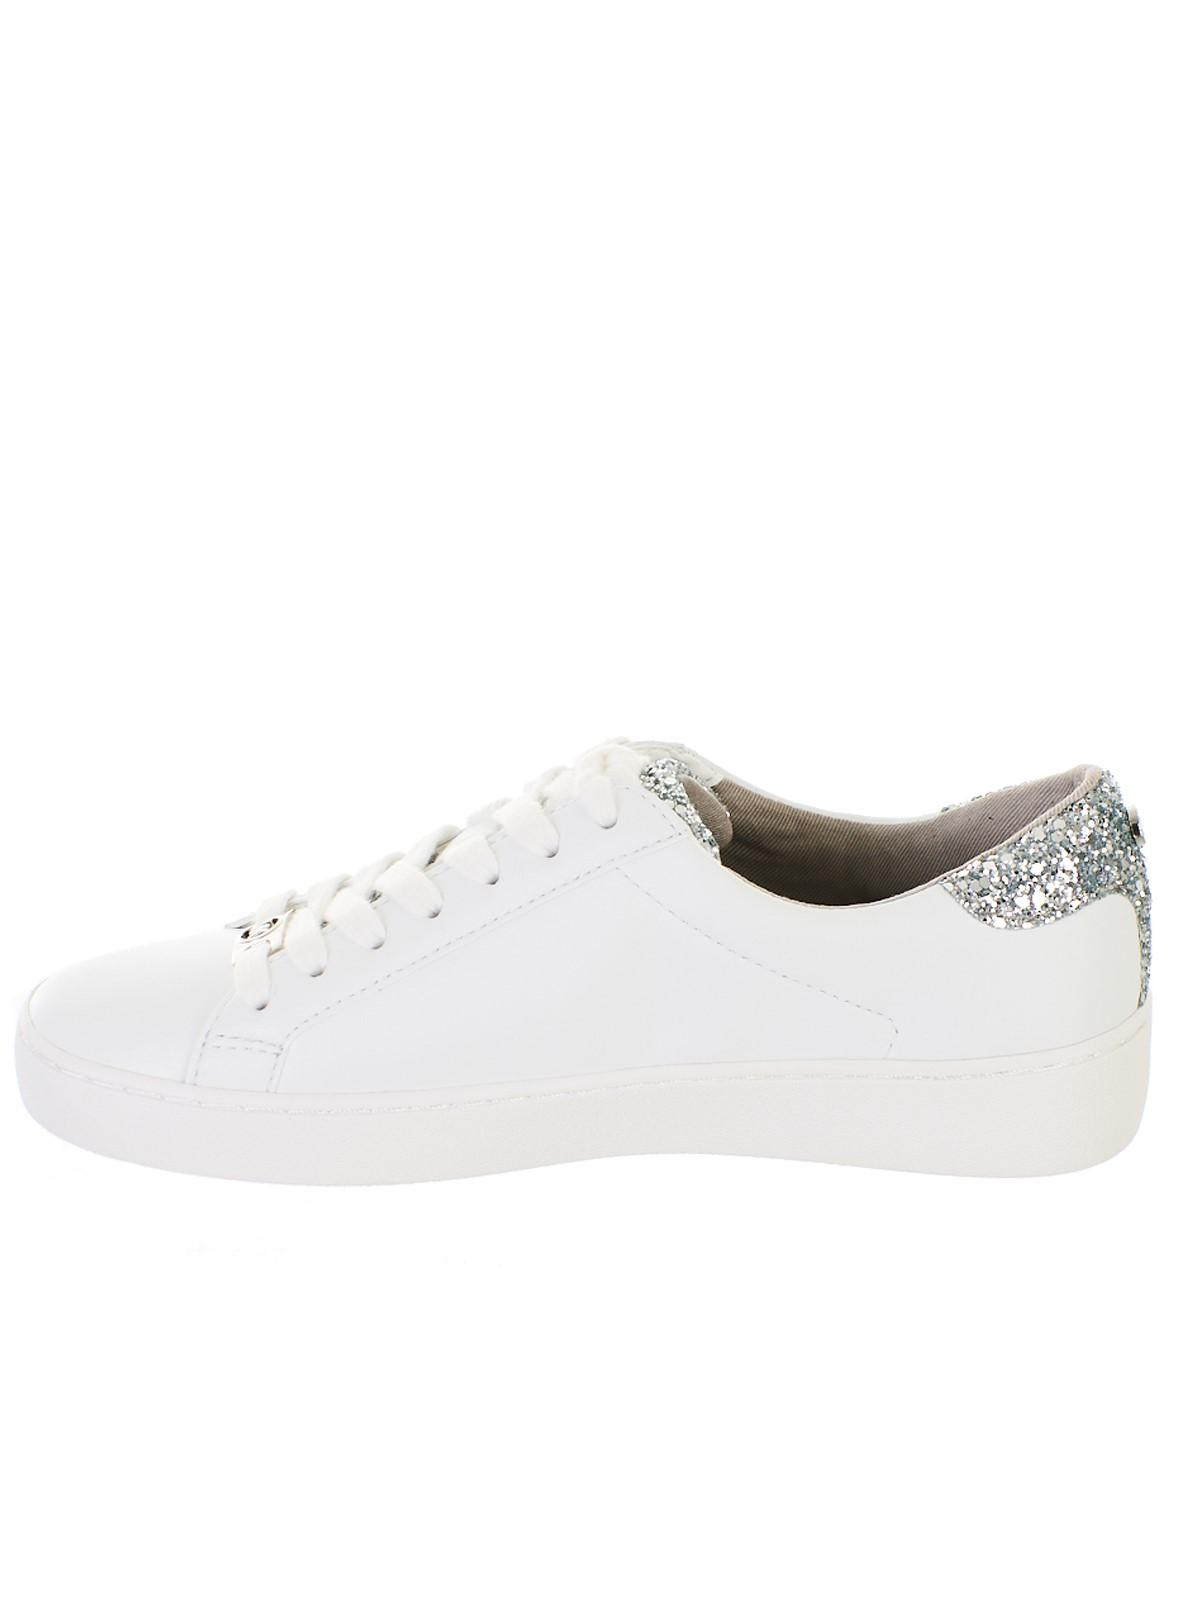 ecdaeab4795 Lyst - Michael Kors White Irving Lace Up Sneakers in White